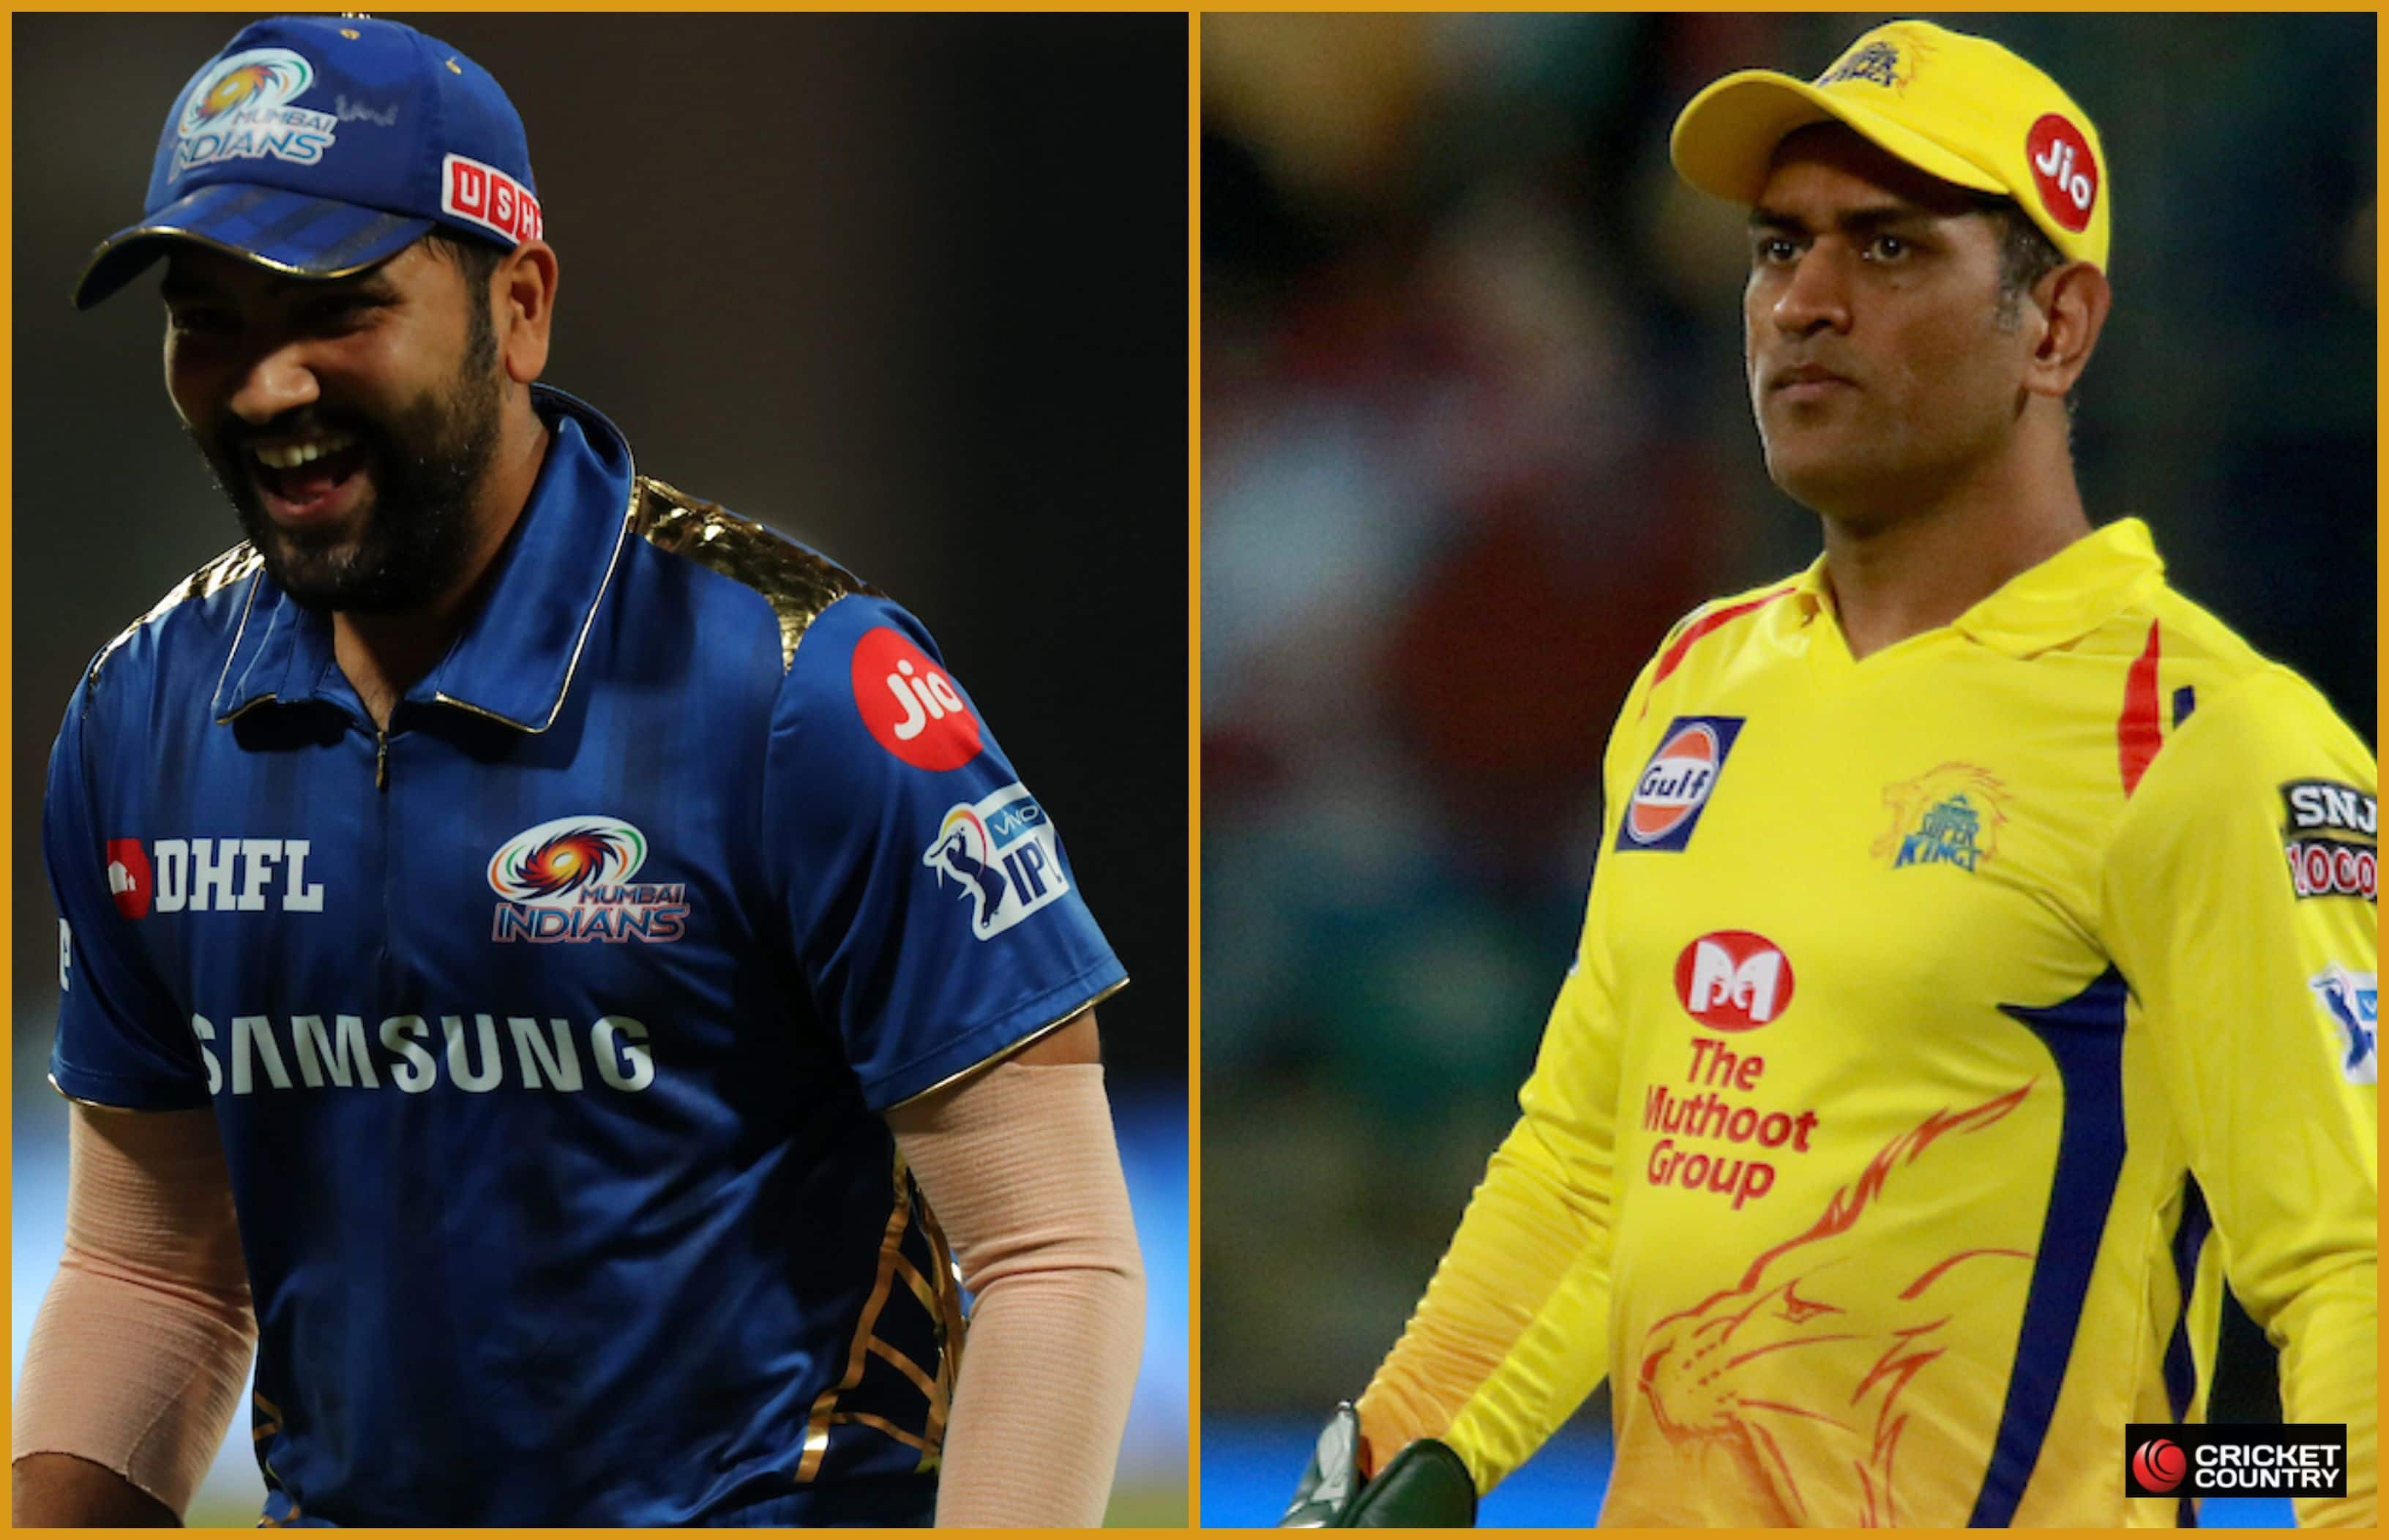 Mumbai Indians vs Chennai Super Kings is IPL equivalent of El Clasico: Rohit Sharma